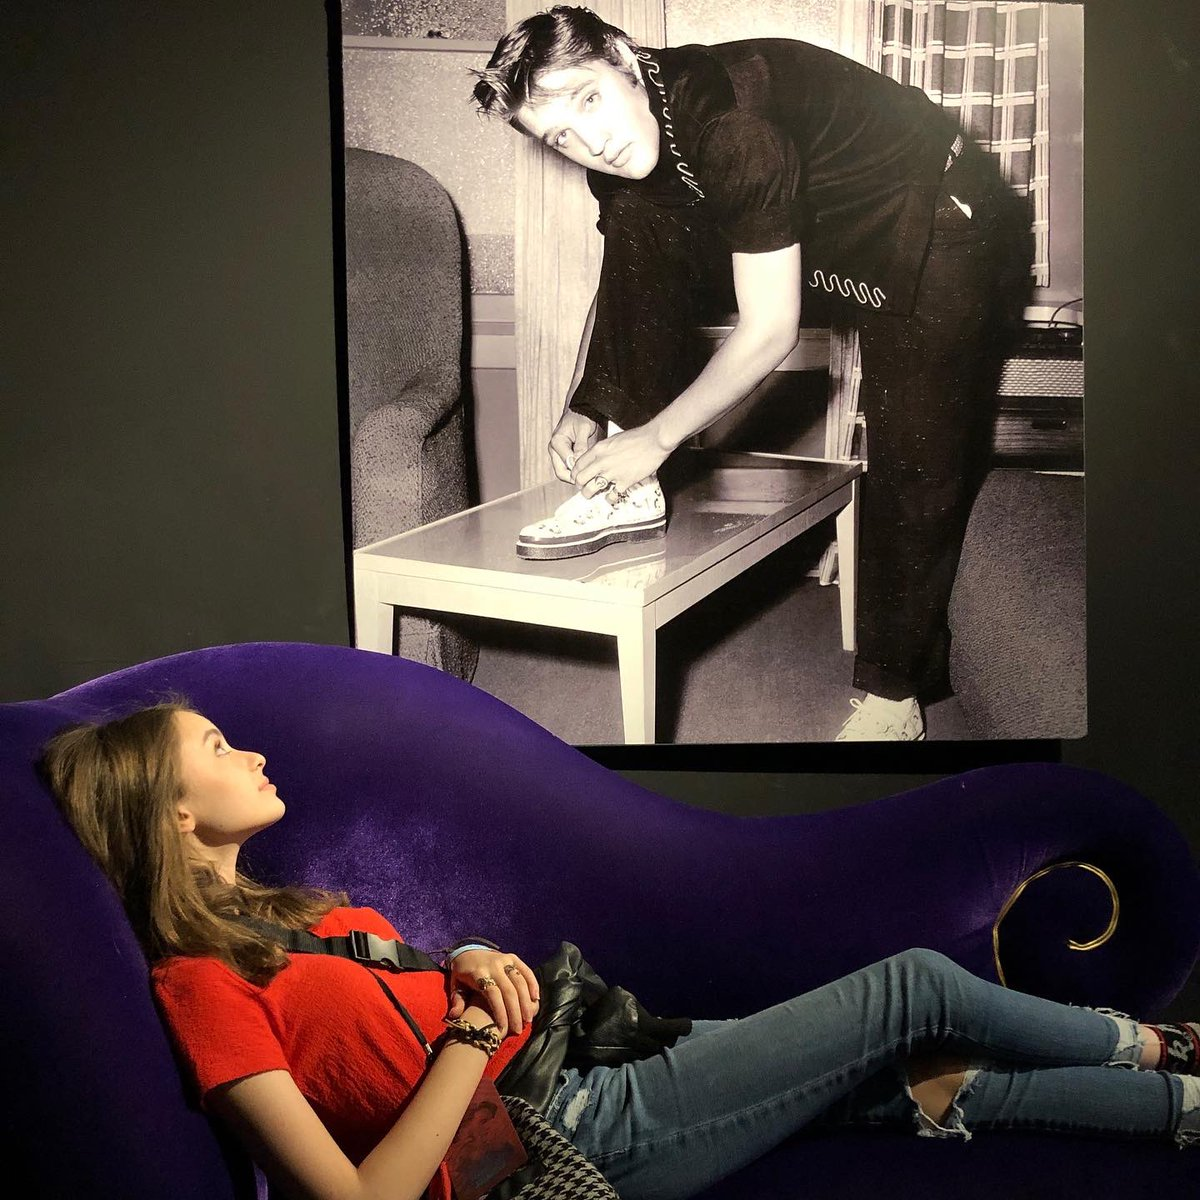 On my Top 10 list of people I'd love to sit on a couch & chat with... The King! Happy 85th Birthday Elvis!  And if anyone knows how I can get those shoes (replica is ok), please share! #elvispresley #happybirthdayelvis #Elvis85 #thekingofrocknroll #iloveshoes #ZenSimonepic.twitter.com/lPg3AB01A4 – at Graceland